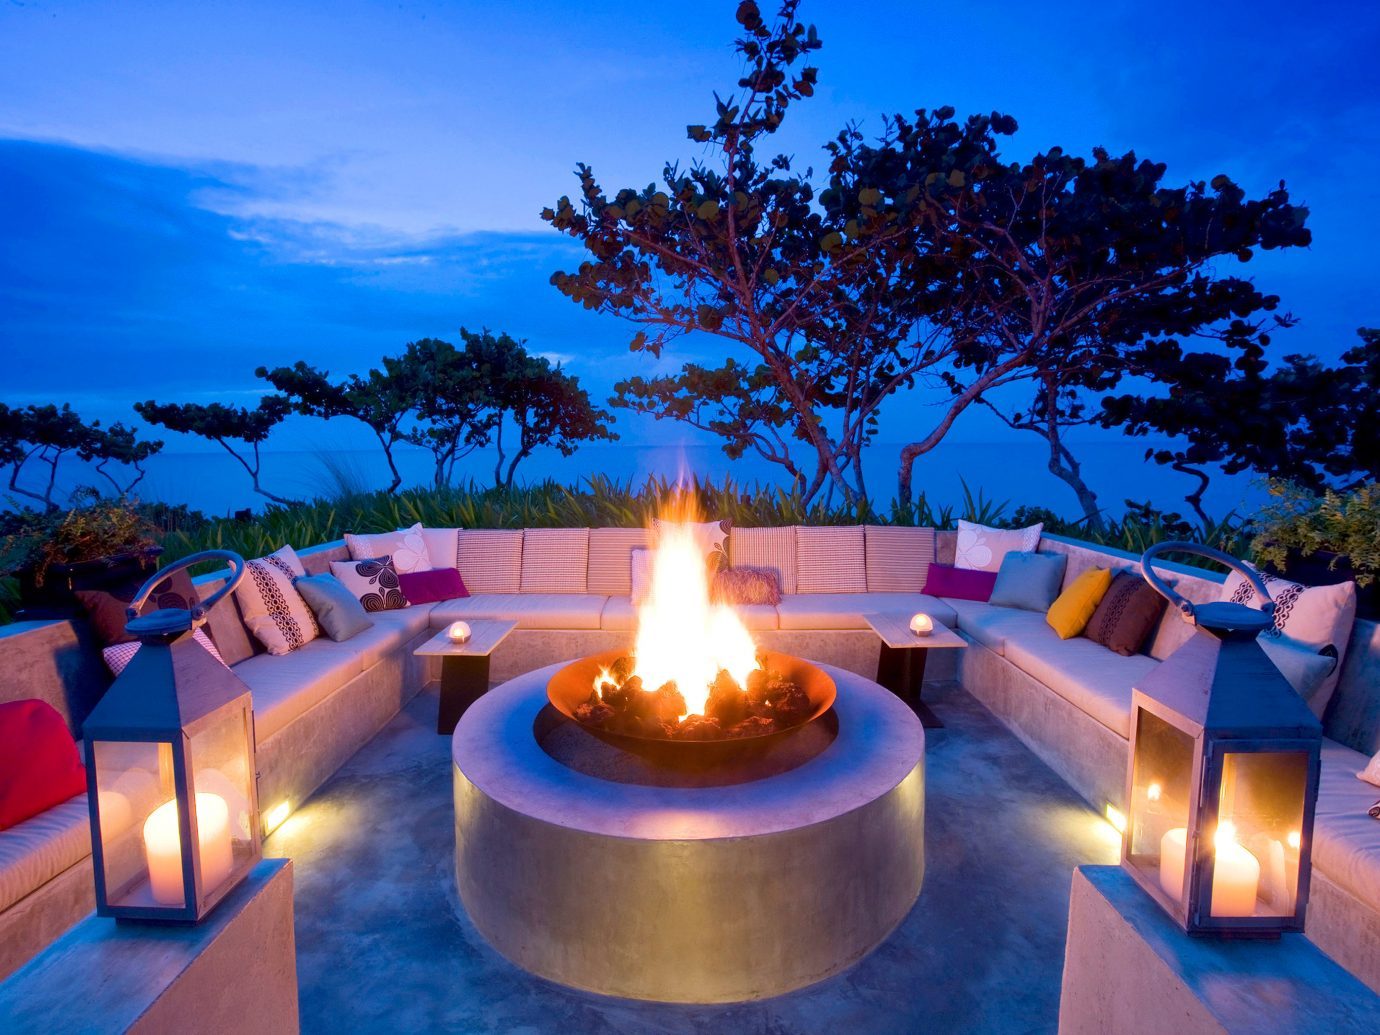 Firepit Lounge Resort tree sky candle leisure swimming pool lit